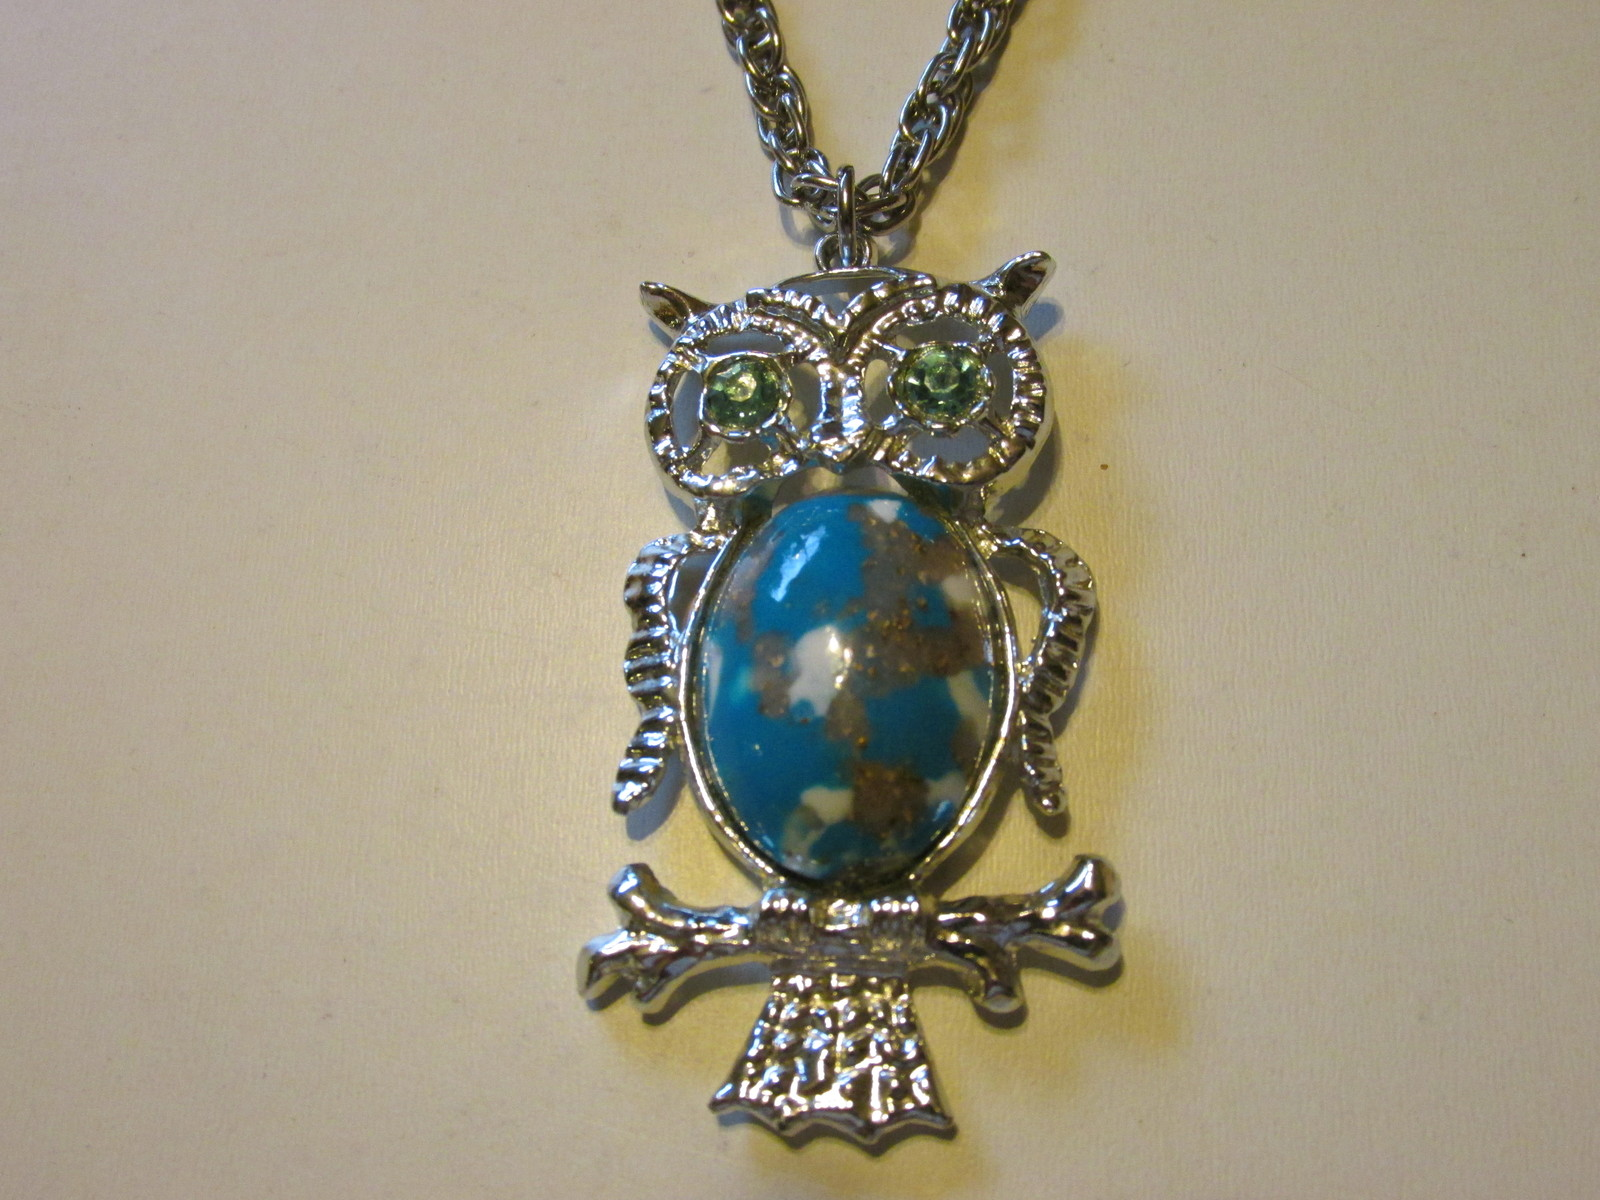 Retro / Vintage Large & Small Owl Pendant Necklace, Earrings with Rhinestones